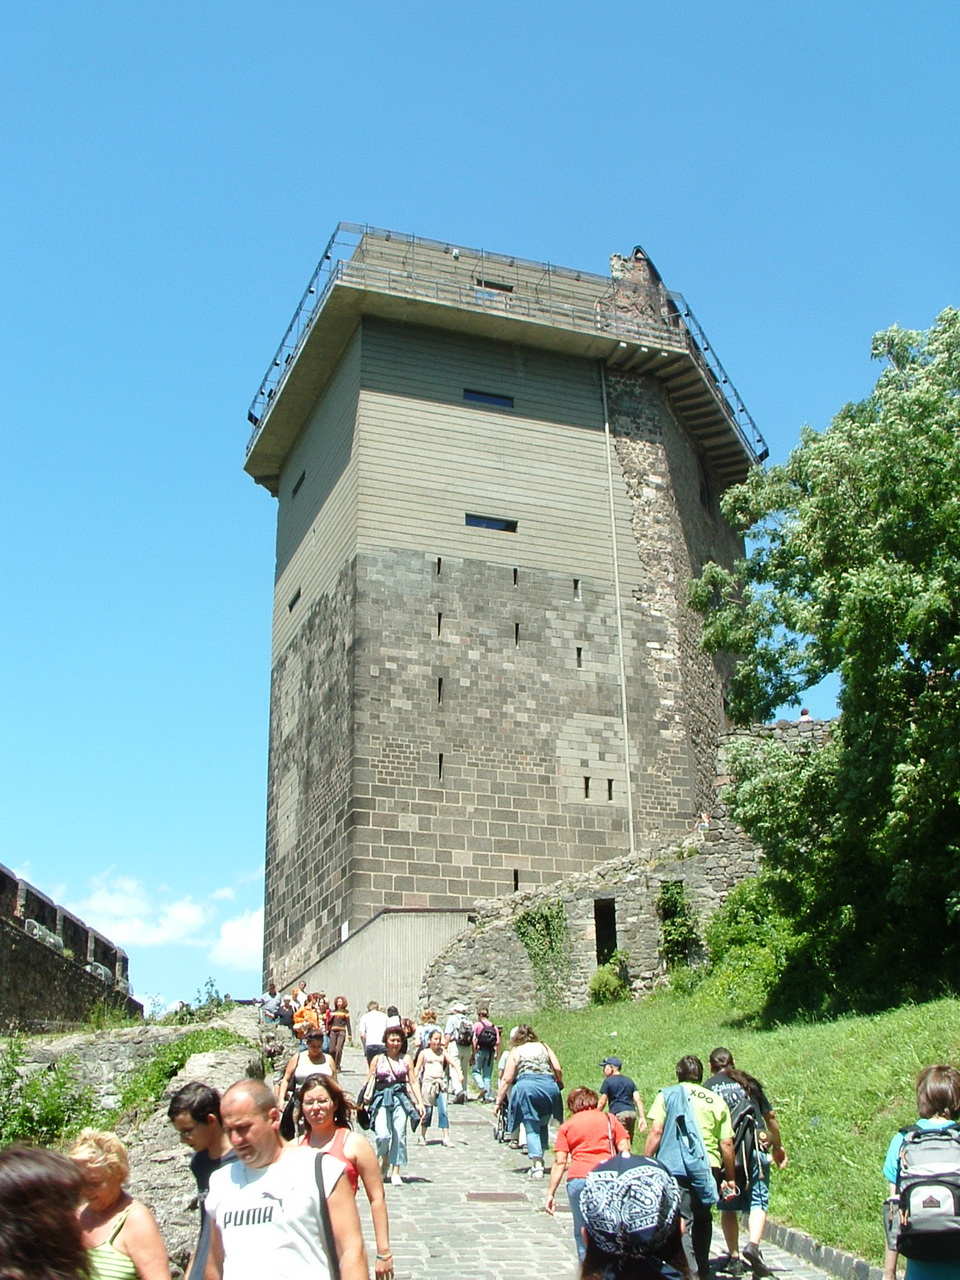 On the steep access road of the Salamon Tower